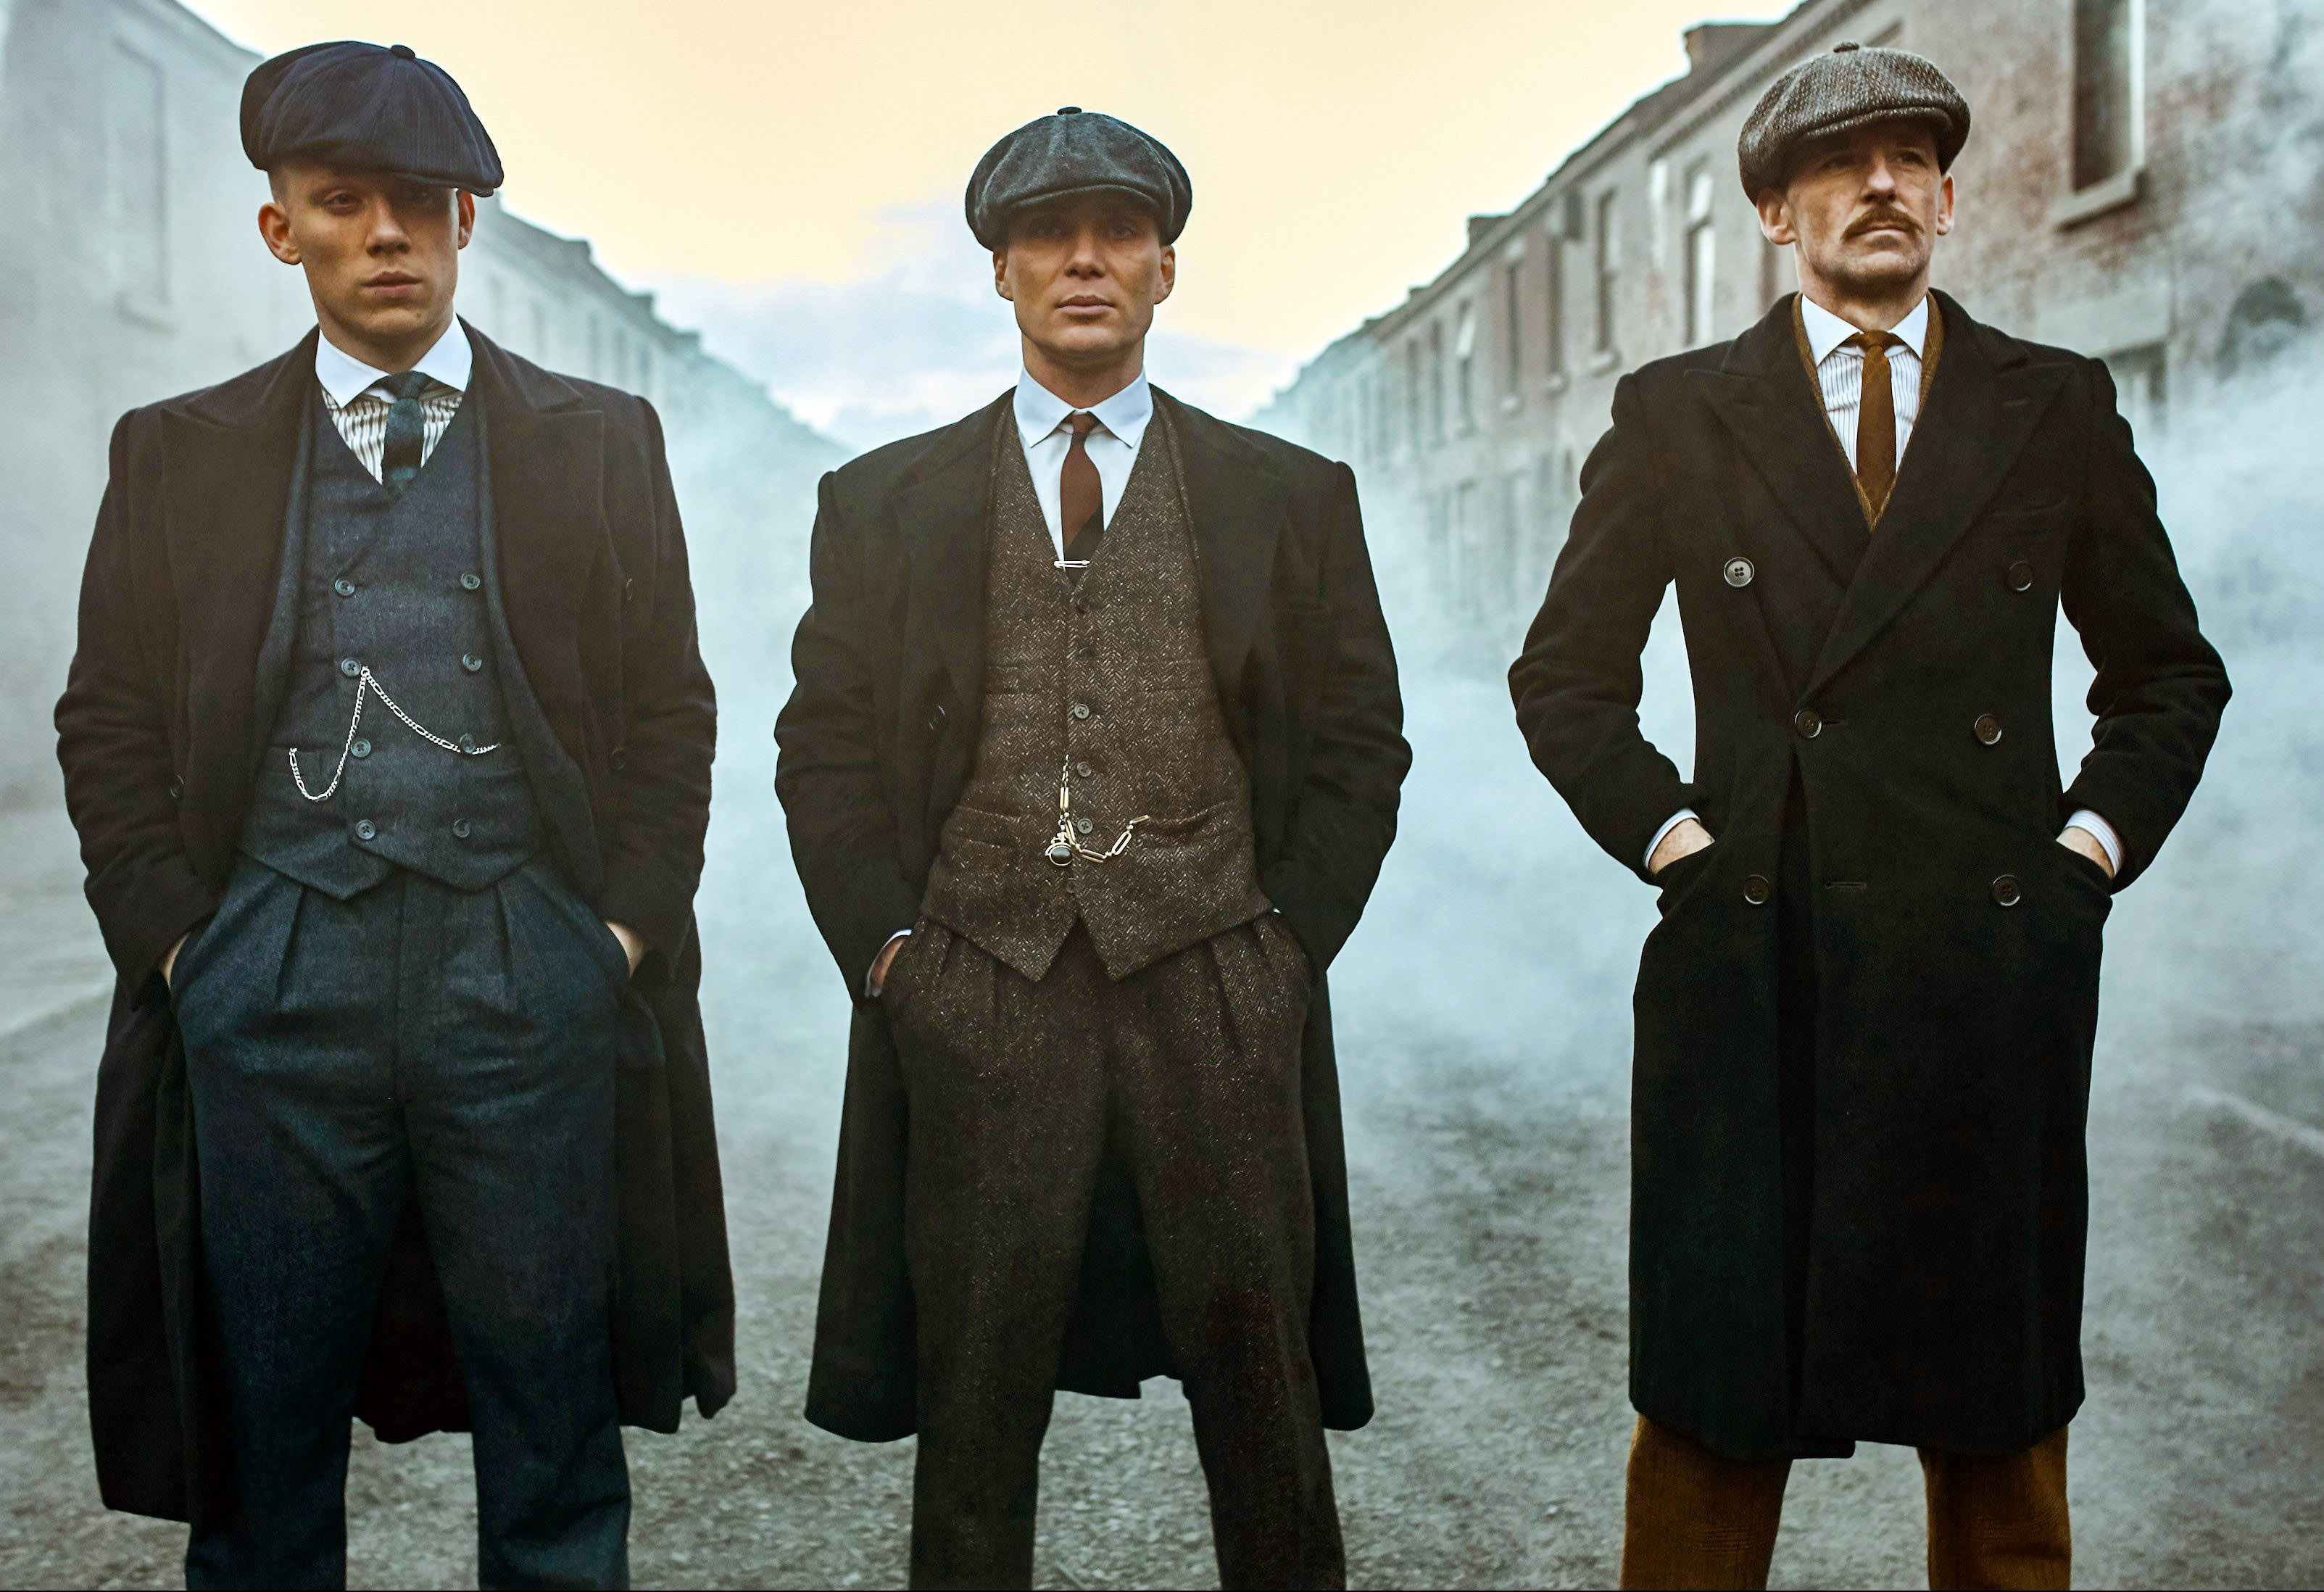 Peaky Blinders' Season Five Moves into Great Depression - The Heights